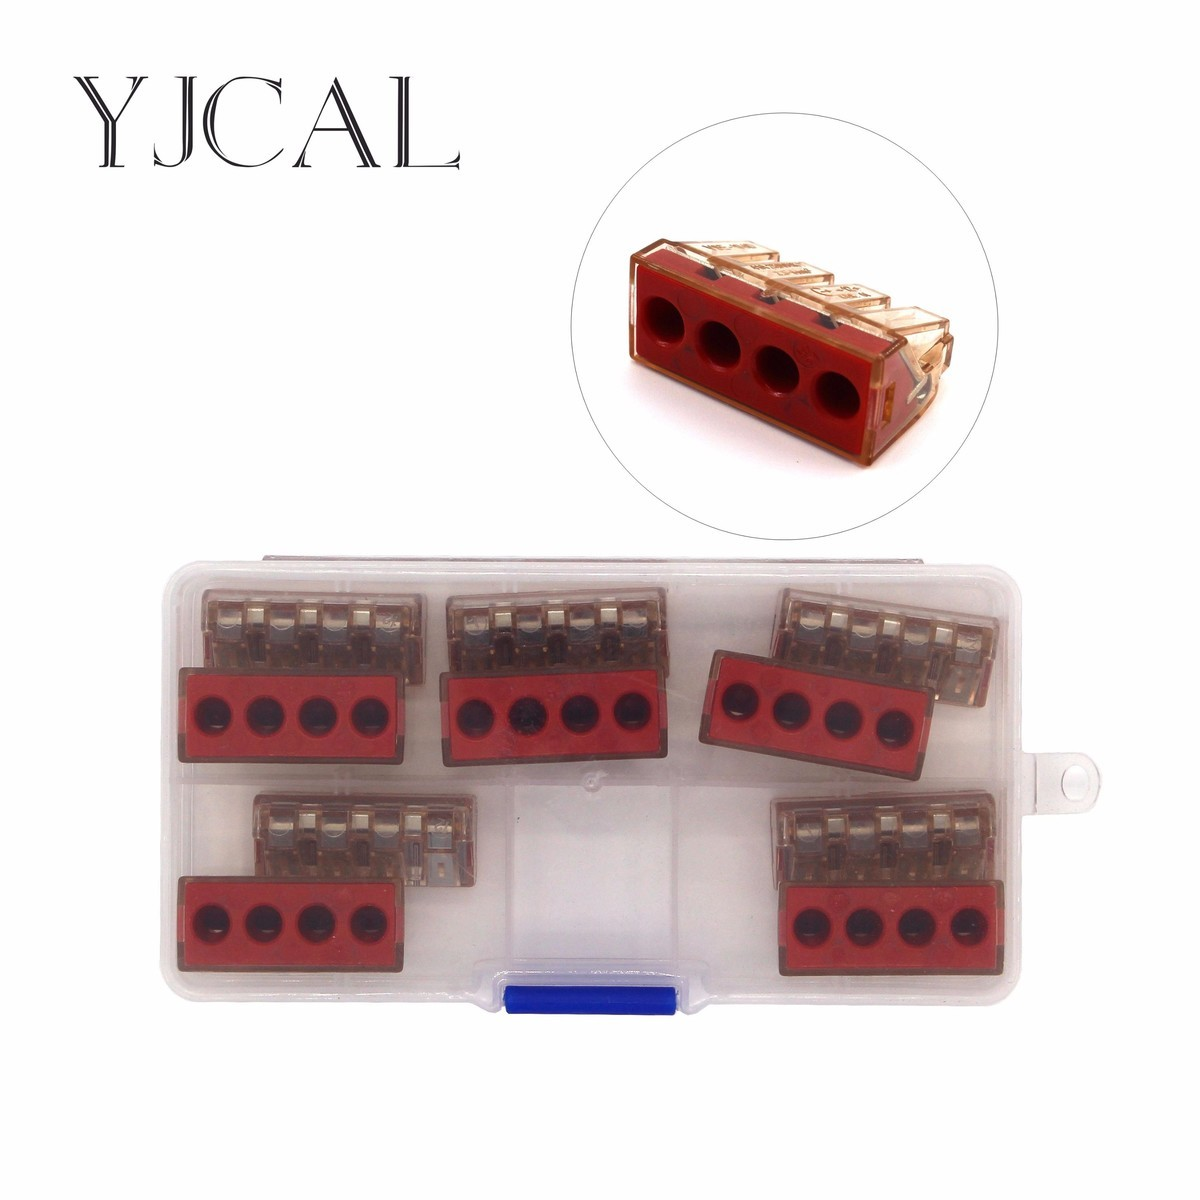 Wago Type D 104 10PCS/box Wire Terminal Quick Connector Plug Line Deconcentrator  Insulated Joint High current and high power 100pcs lot 4 8 male and female insulated terminal insert the plug sheathed wire terminal connector 0 2 1mm2